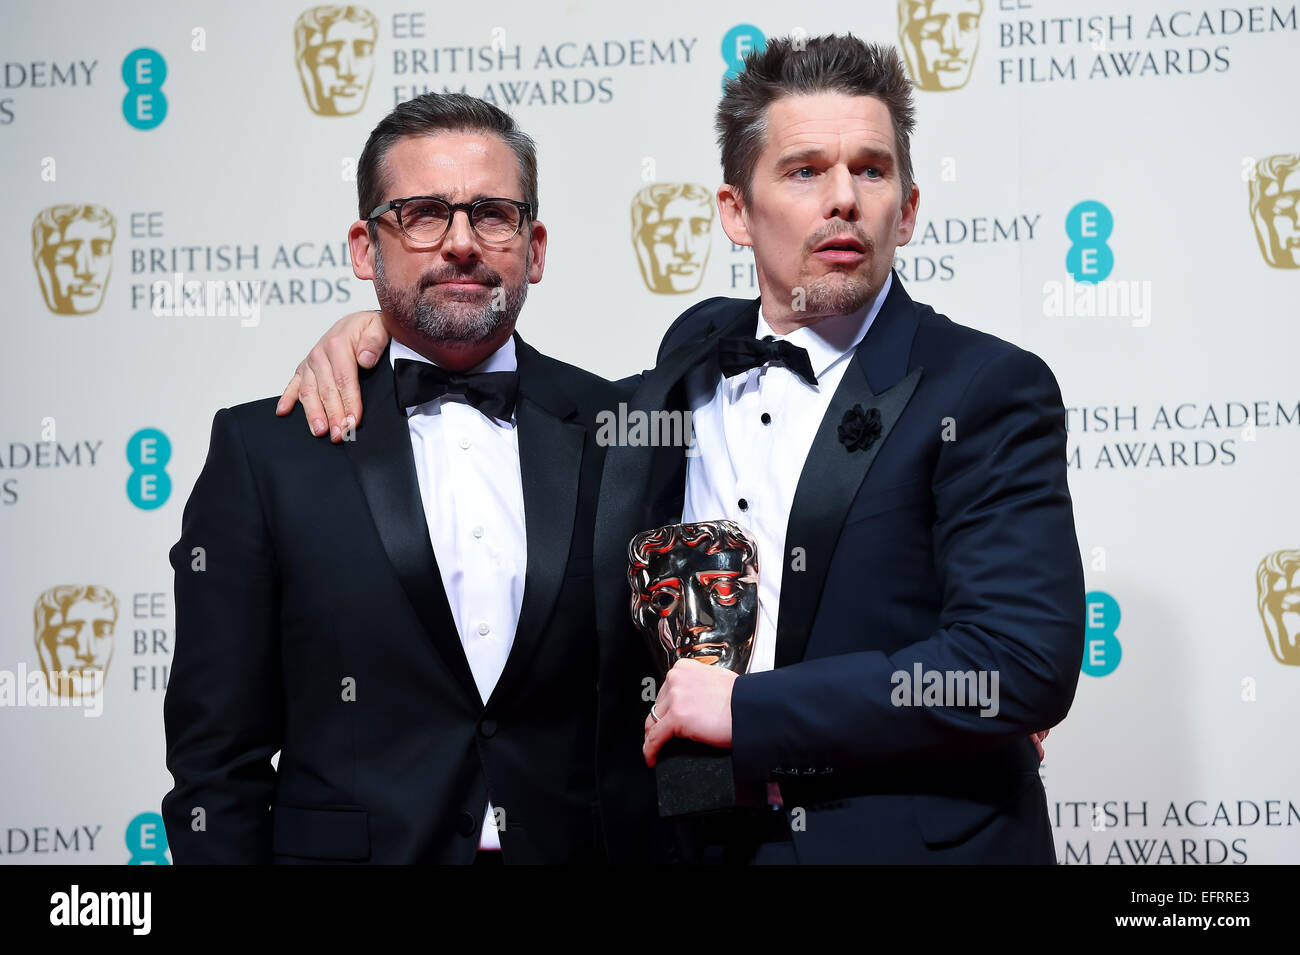 Steve Carell and Ethan Hawke at the EE British Academy Film Awards at The Royal Opera House on February 8, 2015 - Stock Image